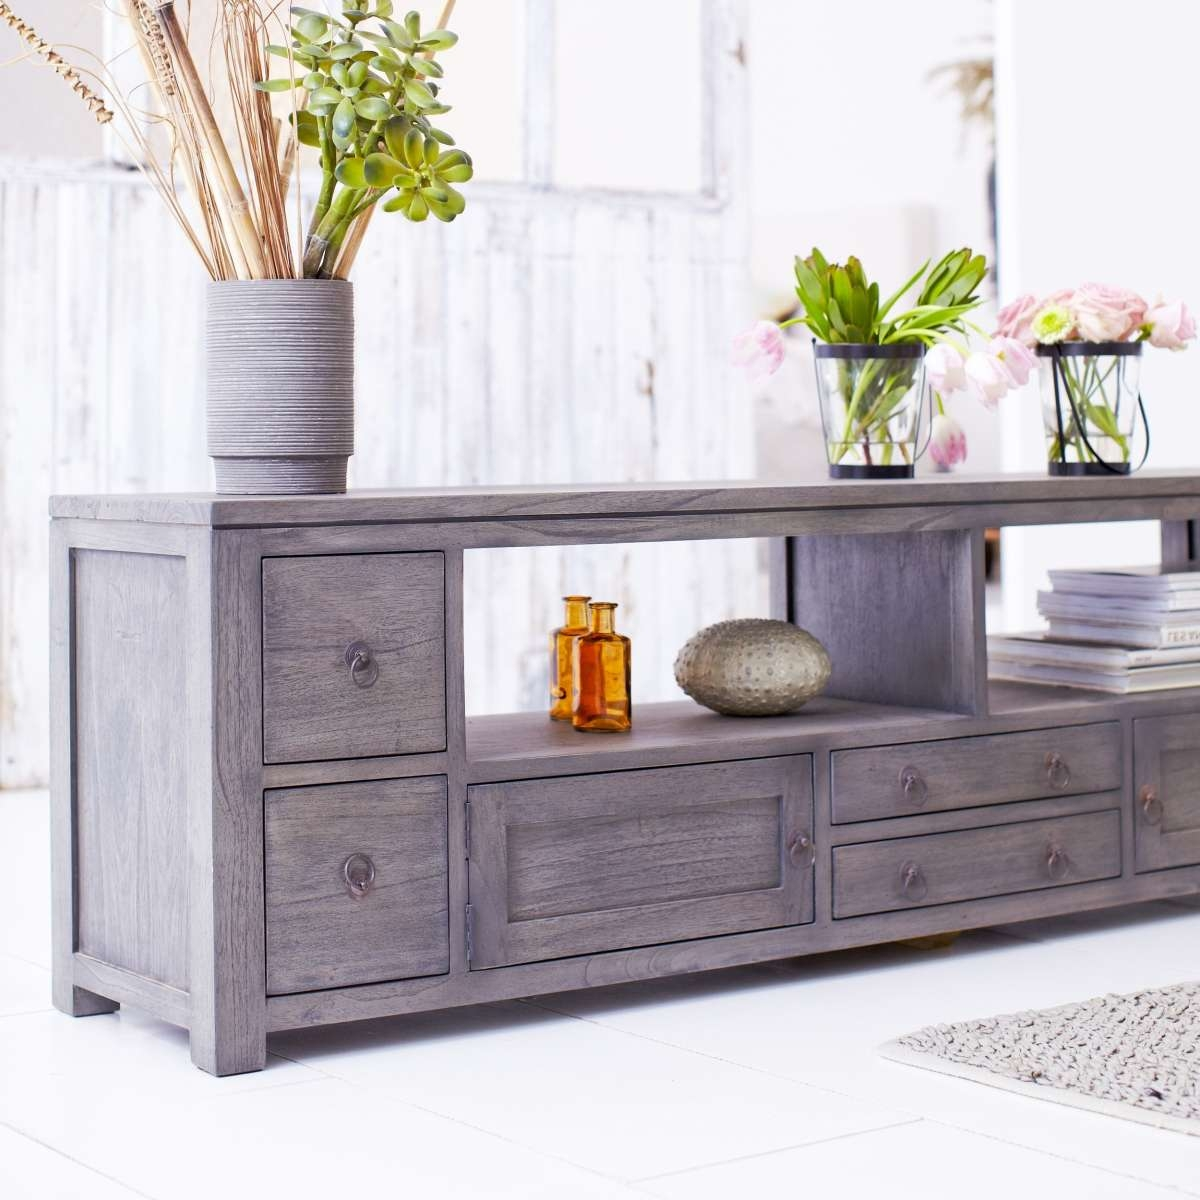 Tikamoon Solid Painted Grey Mindi Wood Tv Cabinet Entertainment Intended For Grey Wooden Tv Stands (View 9 of 15)